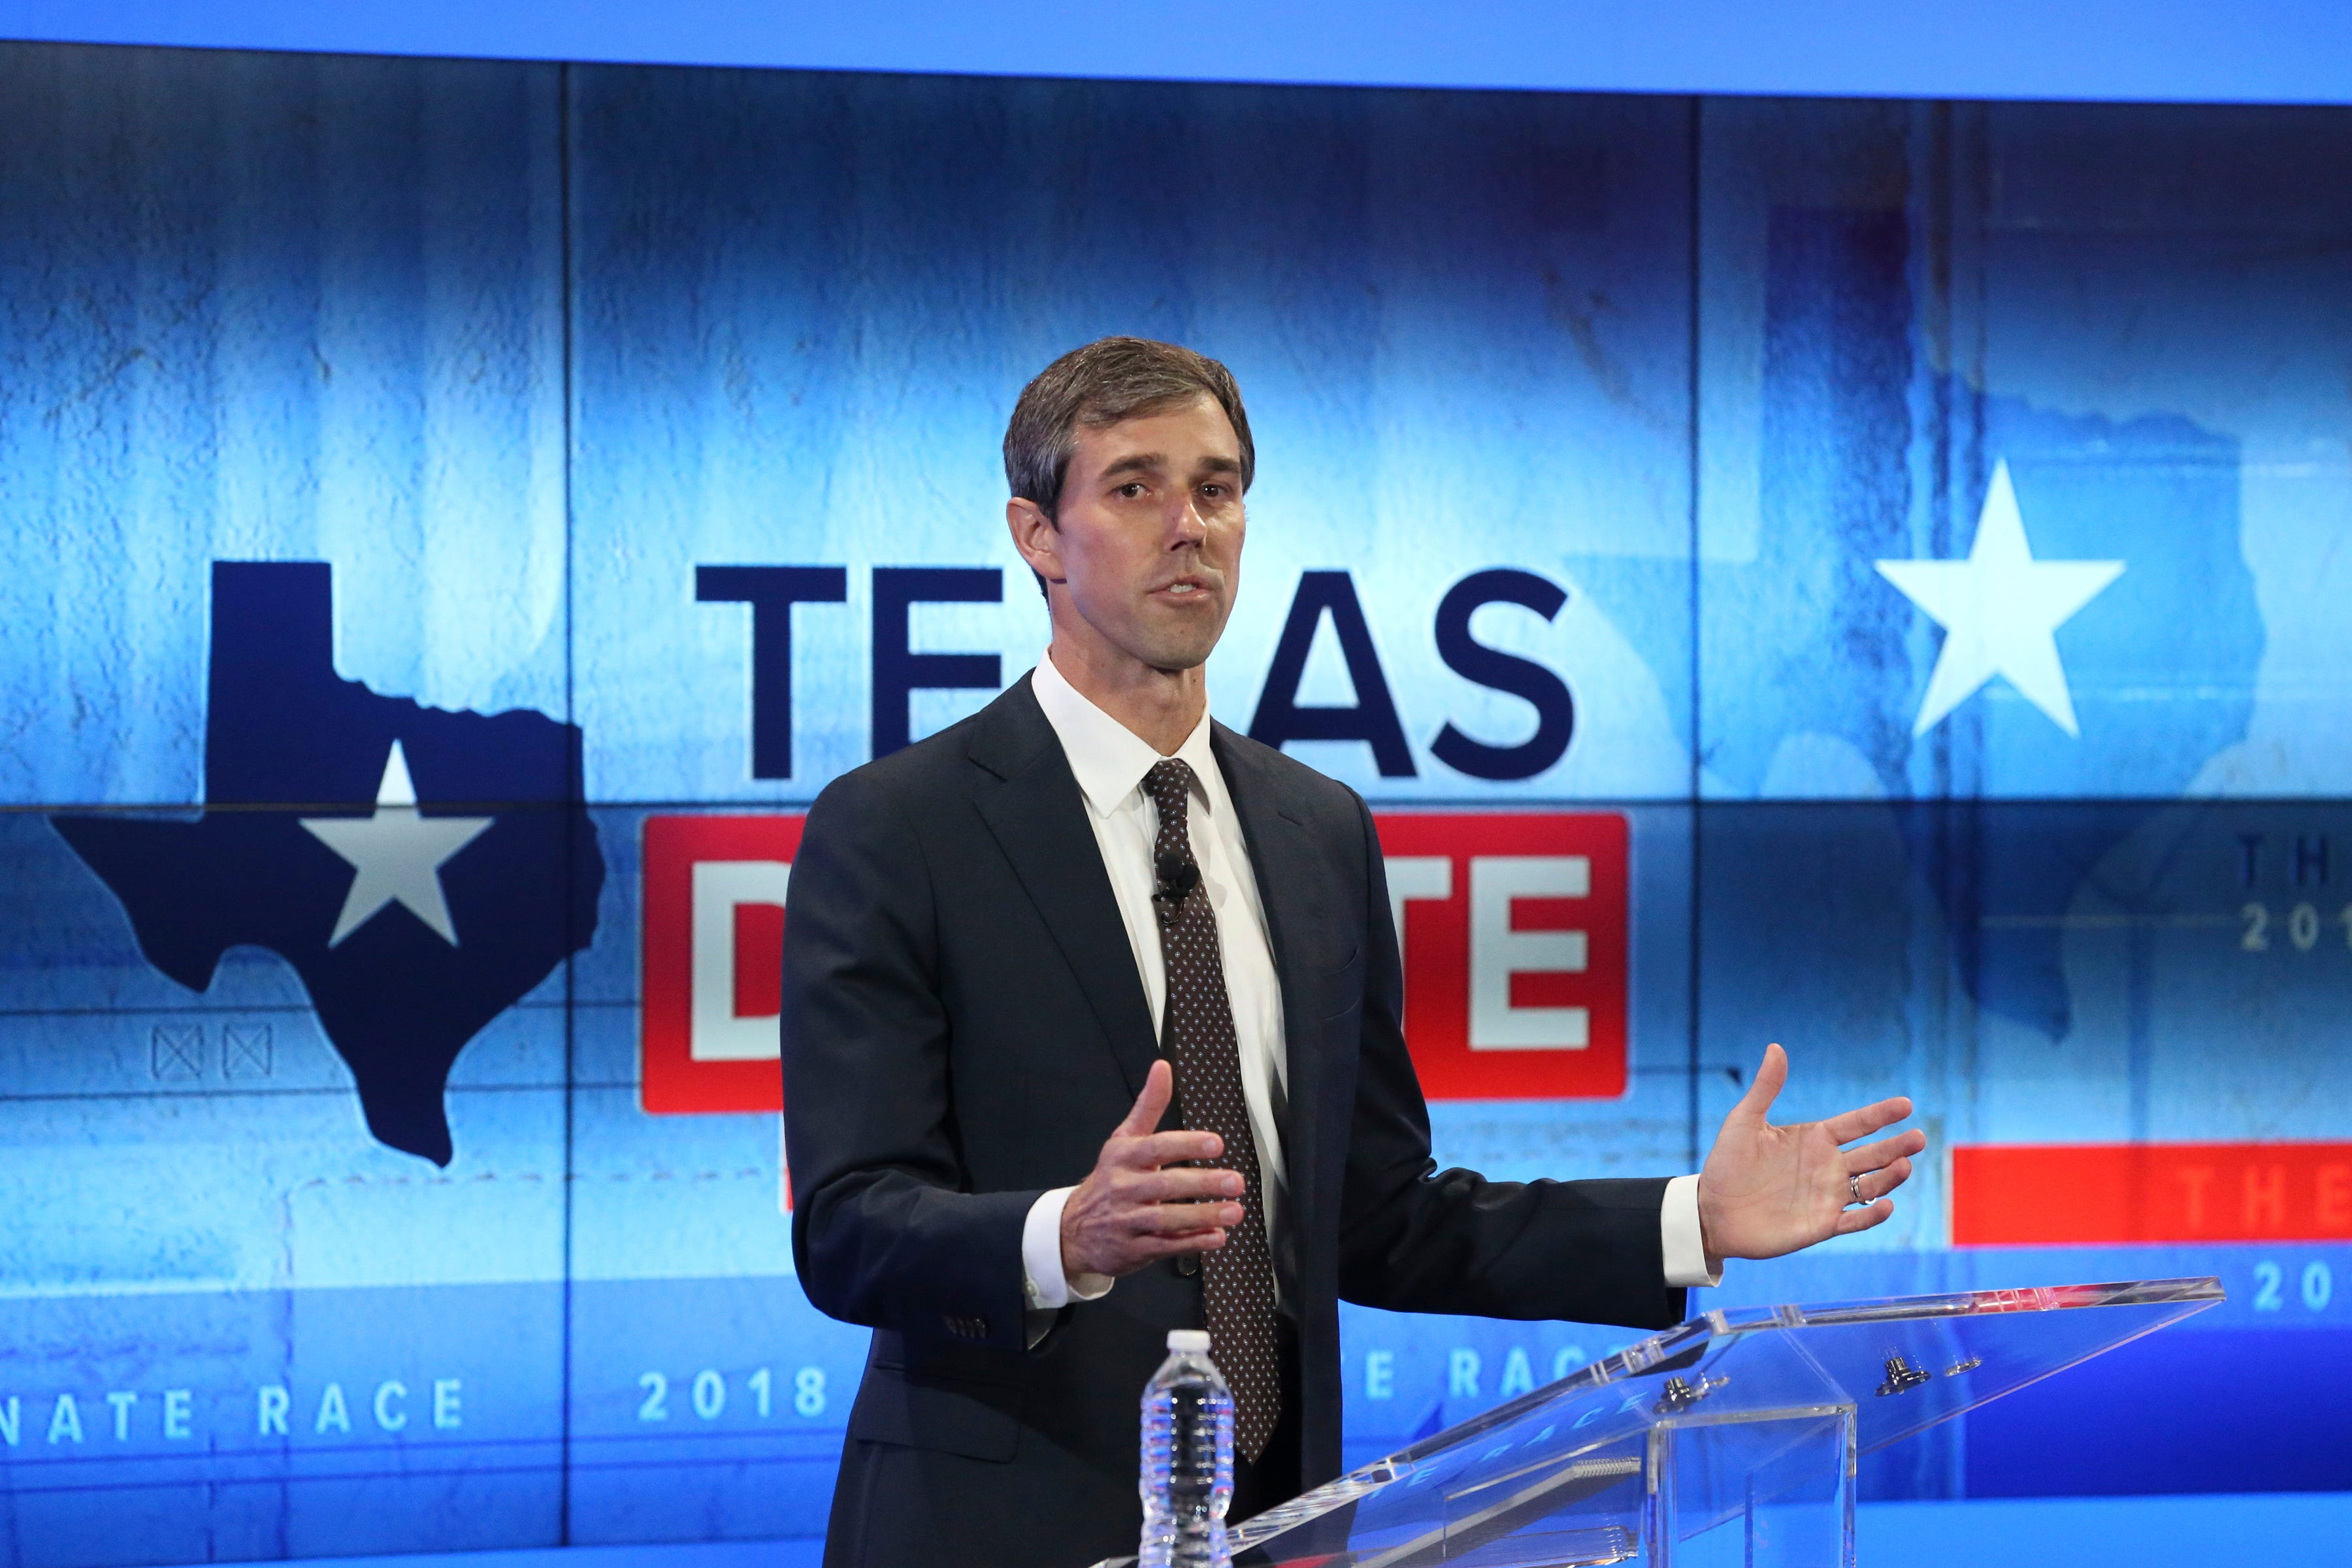 Beto CNN town hall: O'Rourke regrets using 'Lyin' Ted', rules out president run | El Paso Times